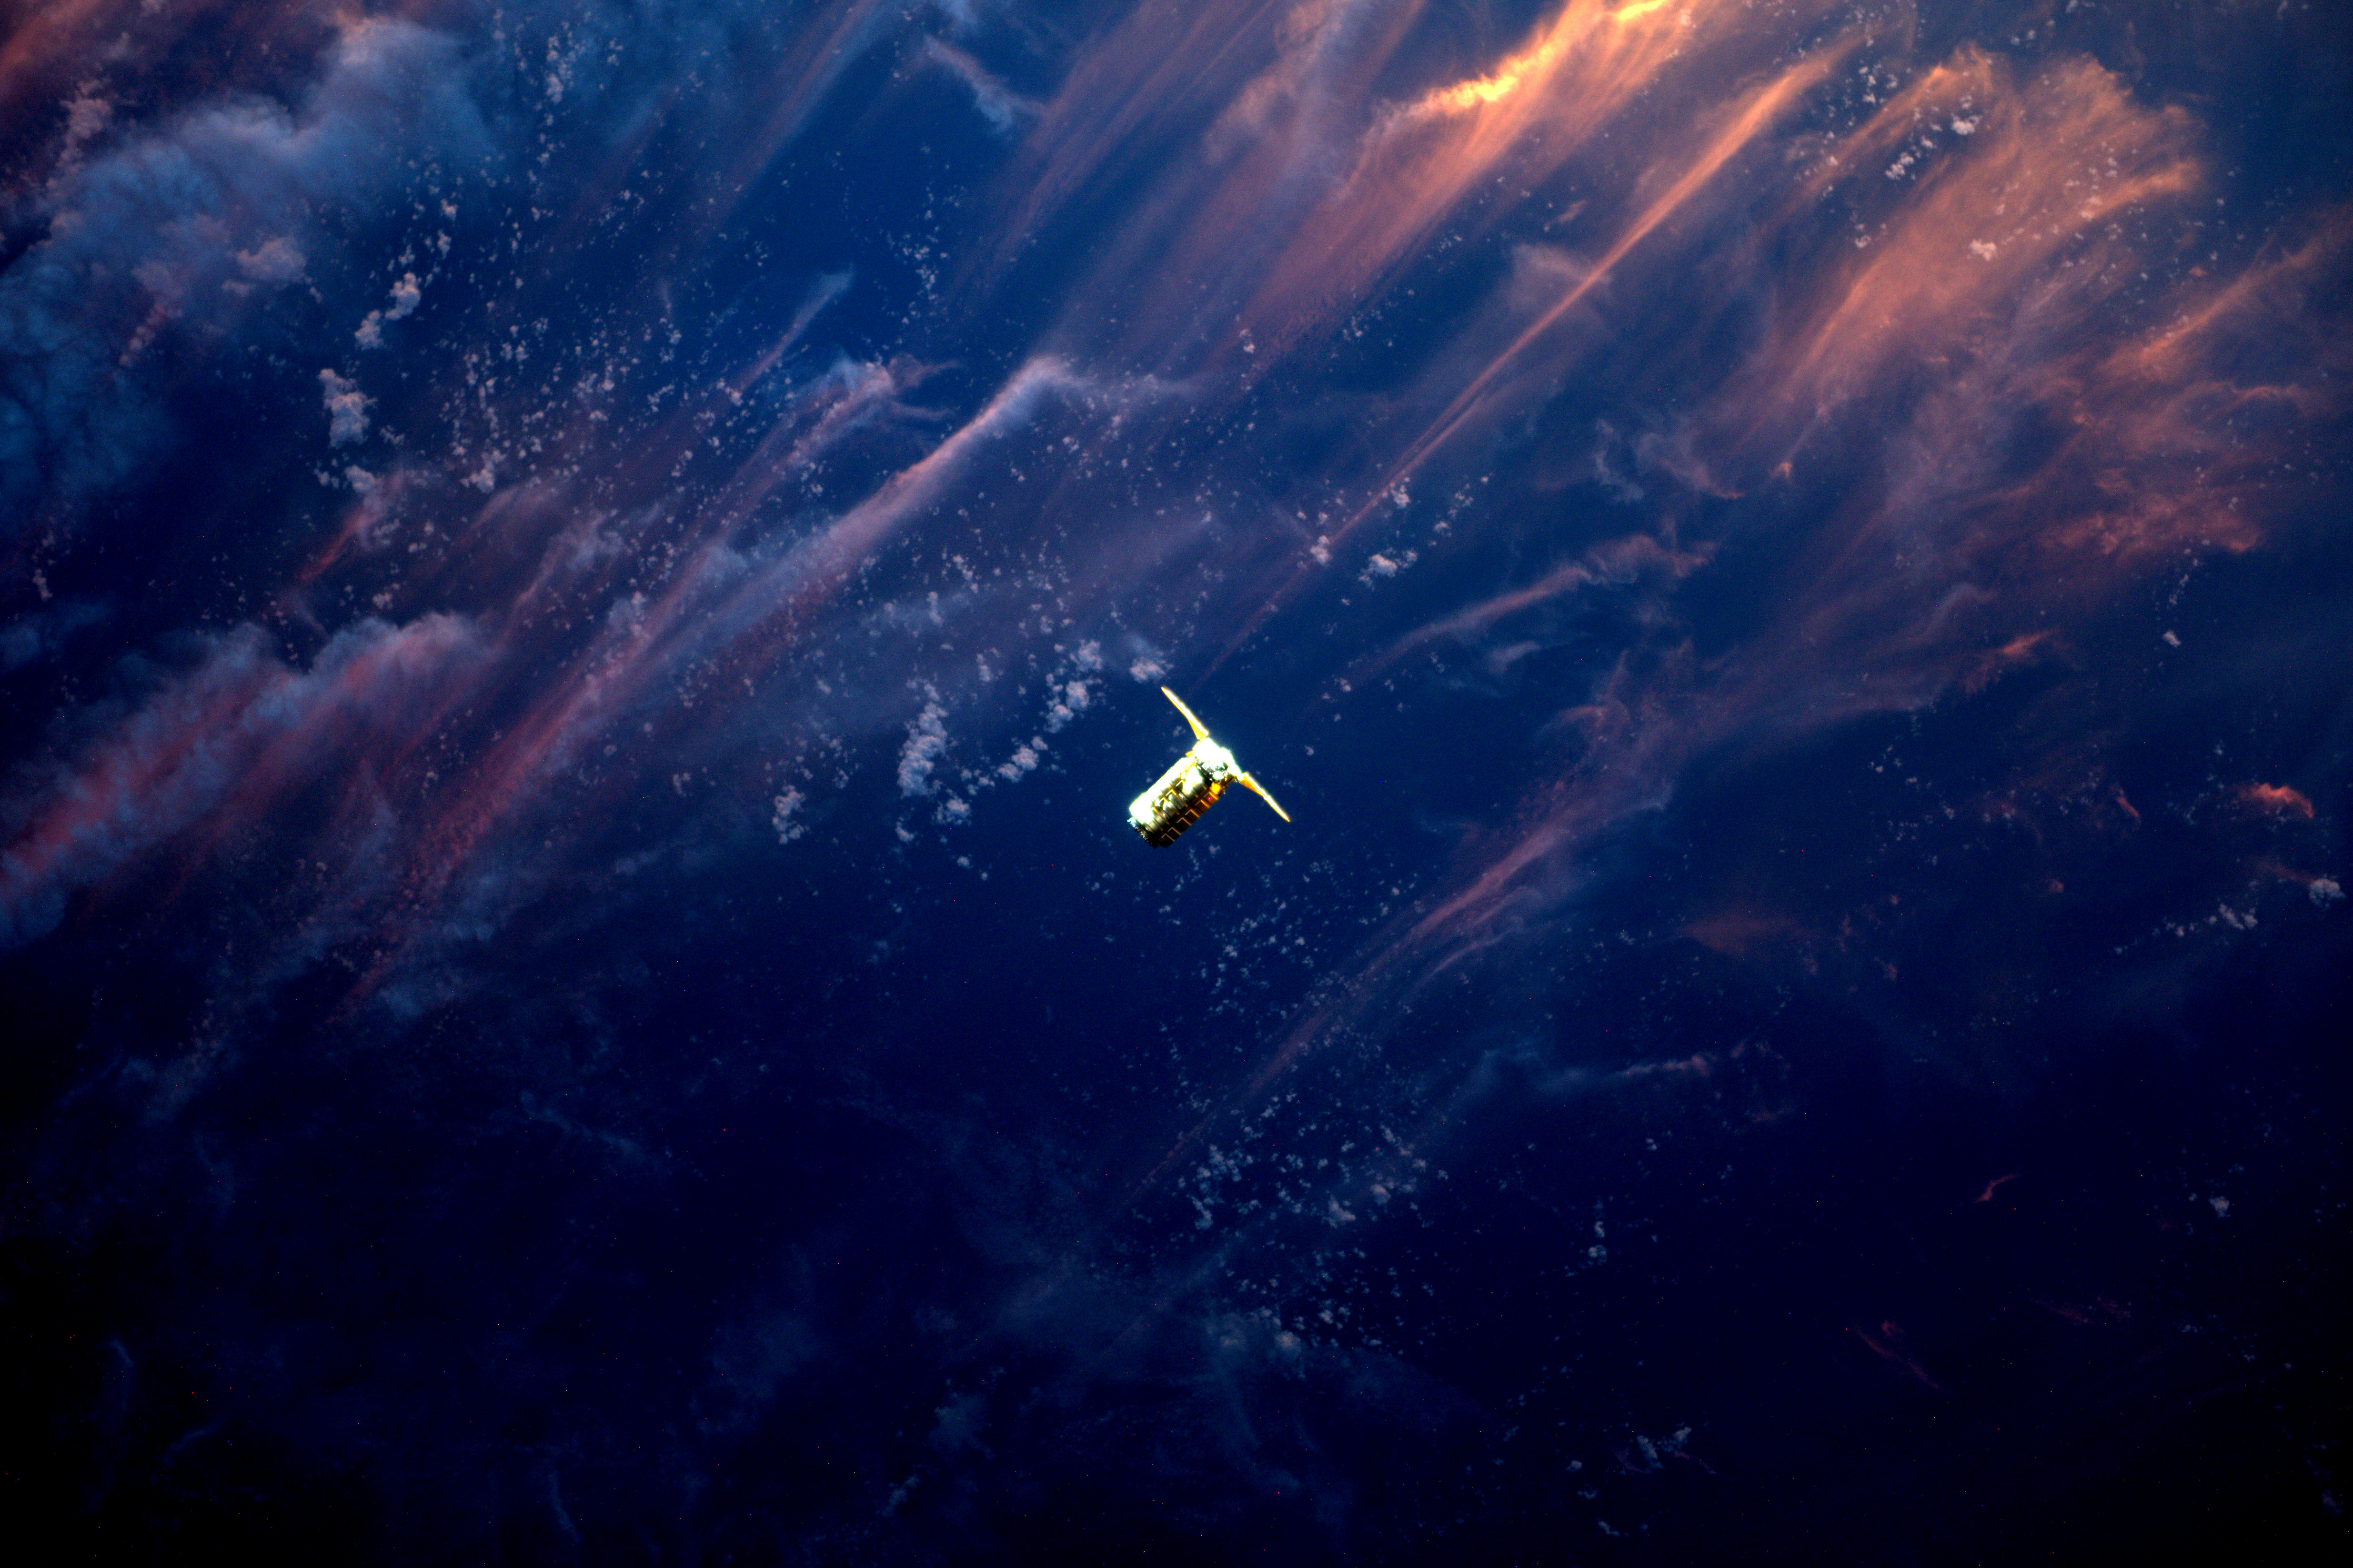 Expedition 51 Flight Engineer Thomas Pesquet of the European Space Agency photographed Orbital ATK's Cygnus spacecraft as it approached the International Space Station, April 22, 2017. Using the station's robotic Canadarm2, Cygnus was successfully captured by Pesquet and Commander Peggy Whitson at 6:05 a.m. EDT. The spacecraft's arrival brought more than 7,600 pounds of research and supplies to support Expedition 51 and 52.  NASA/ESA/Handout via REUTERS  ATTENTION EDITORS - THIS IMAGE WAS PROVIDED BY A THIRD PARTY - RC1C0F04C520